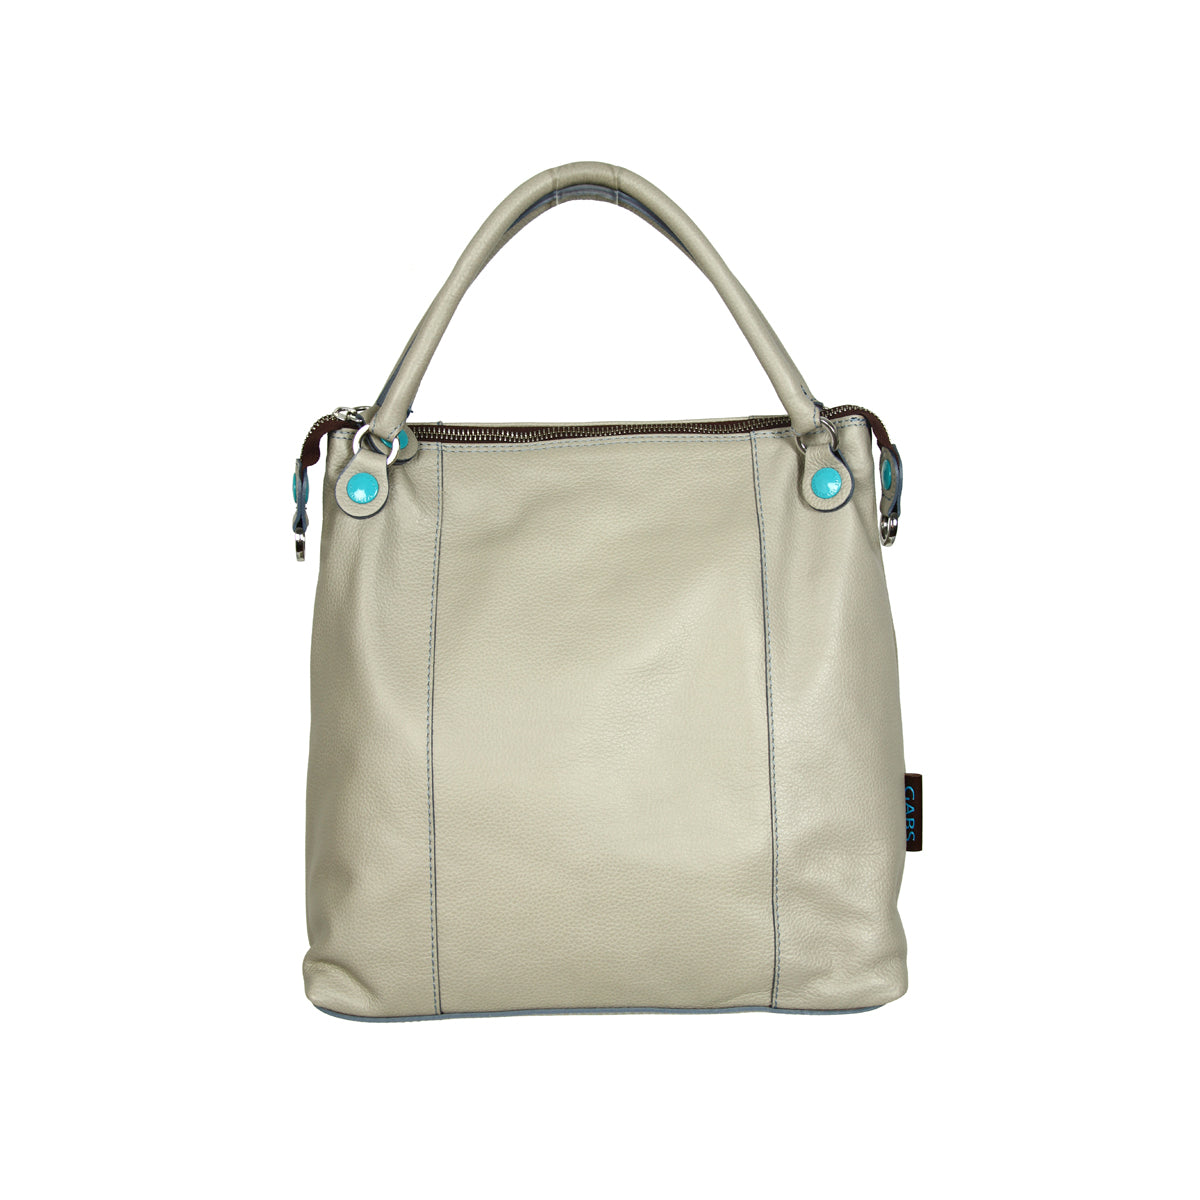 GSAC DMDM Grey (M) - Leather Shoulder Bag